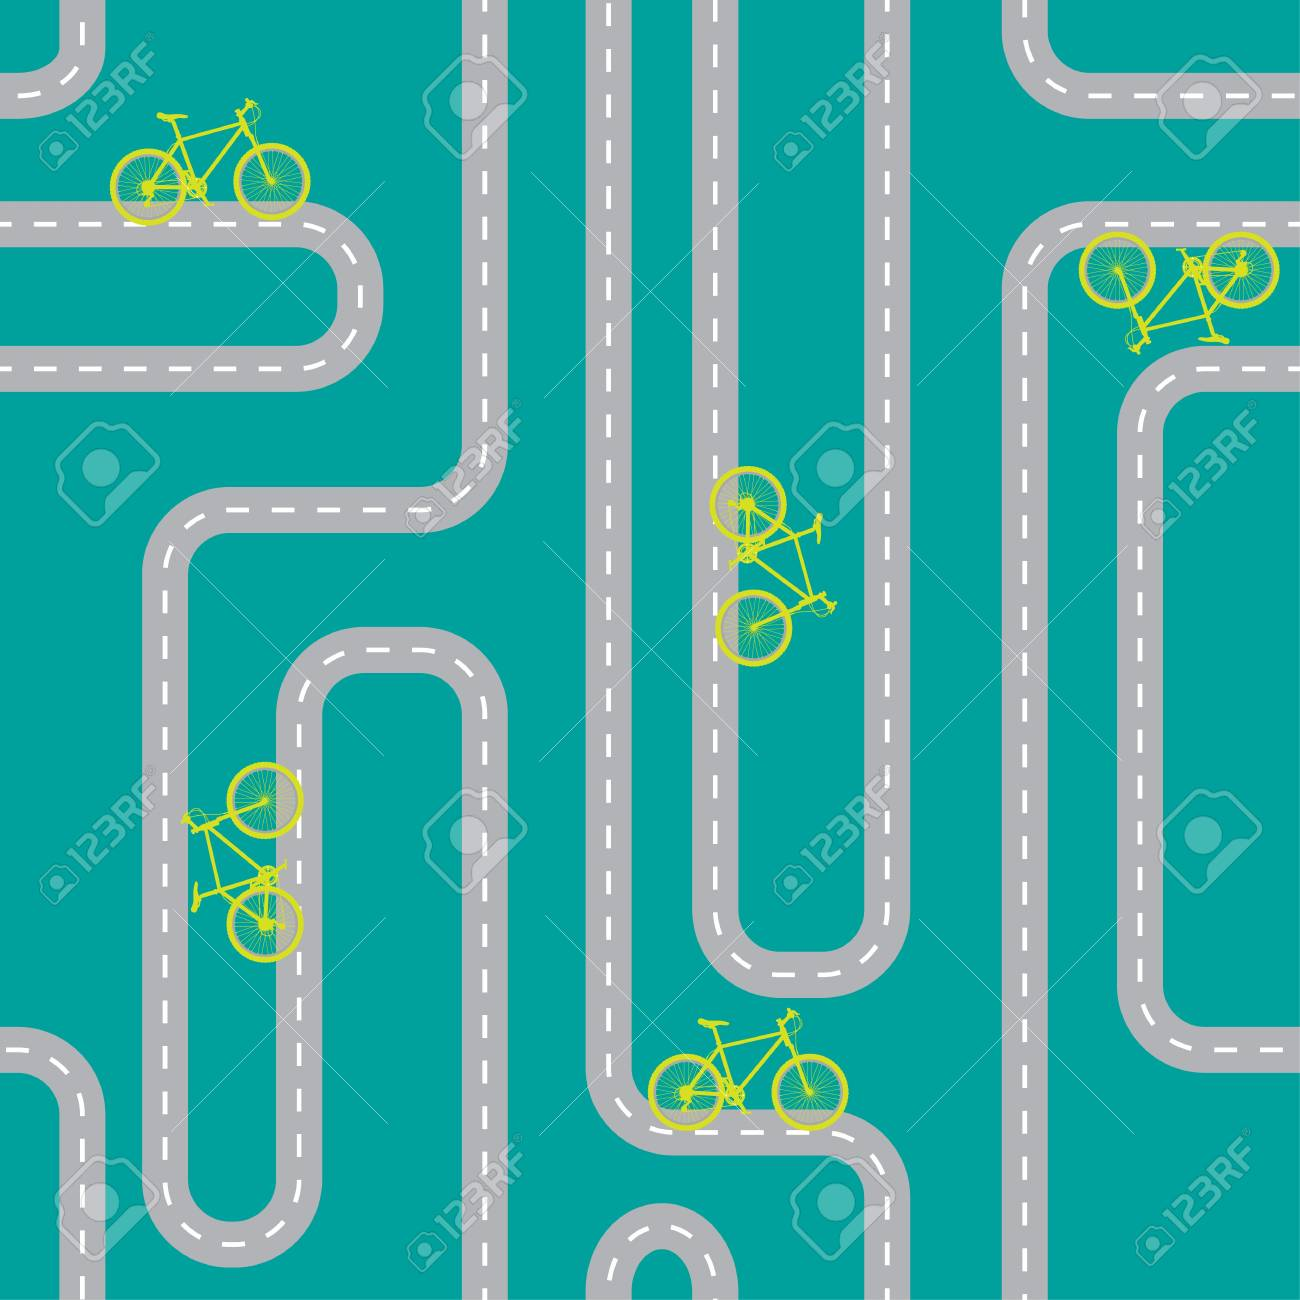 Seamless pattern with mountain bike on the way Stock Vector - 17552297